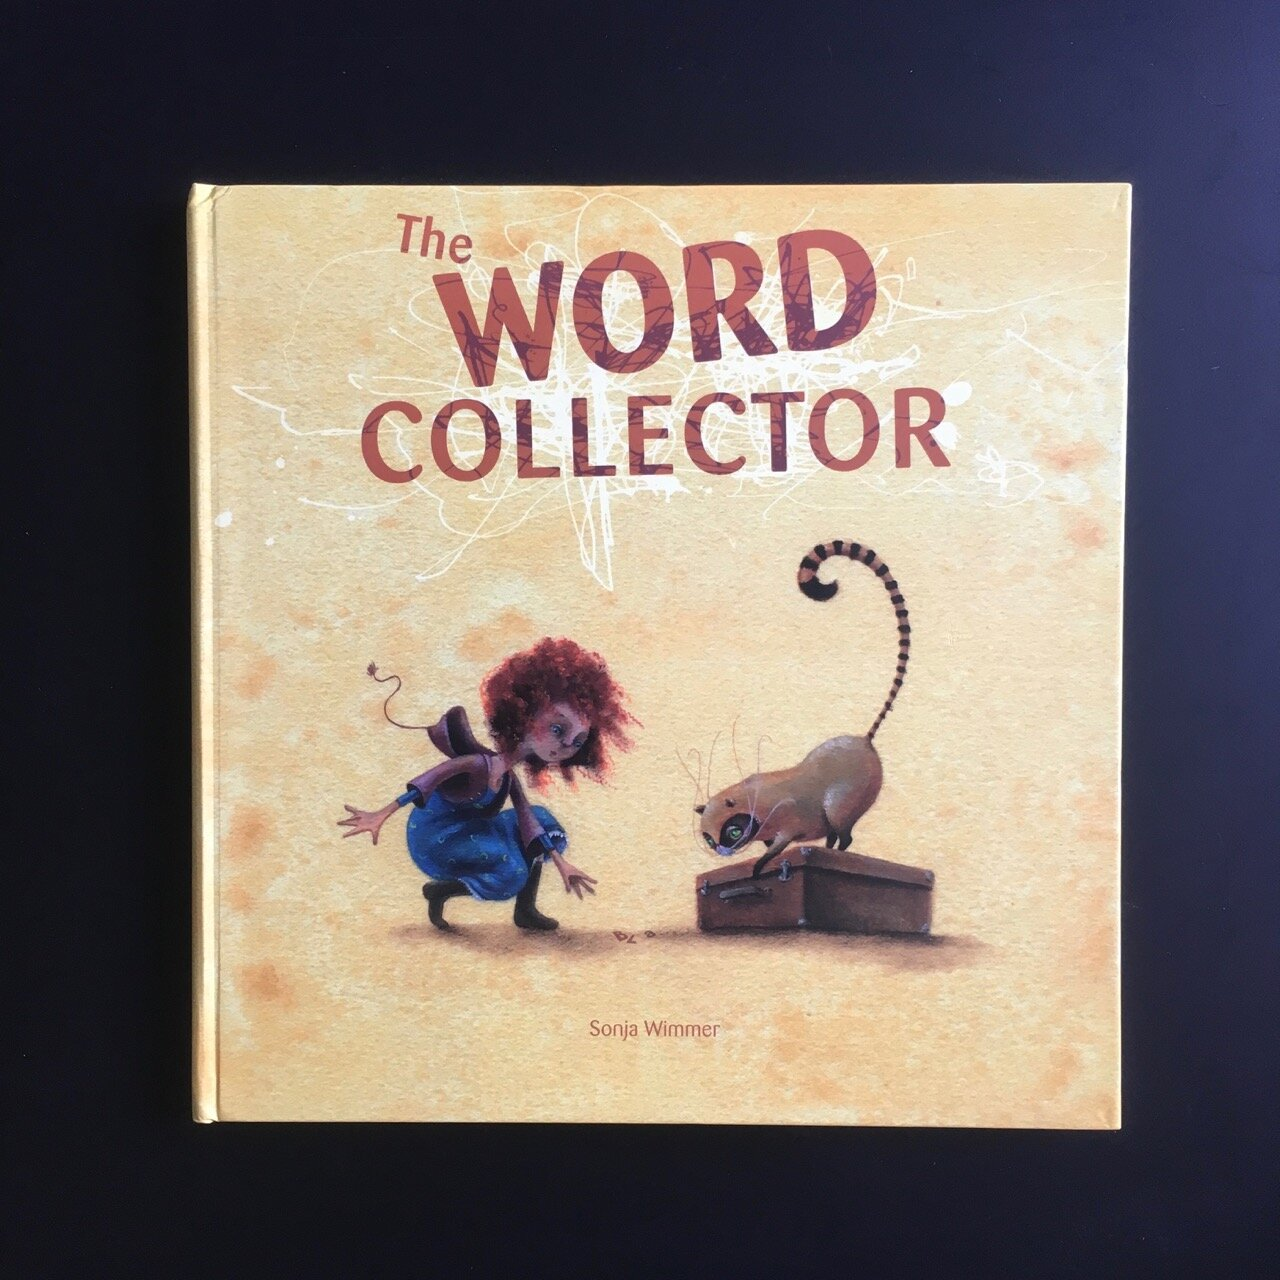 C is for collector